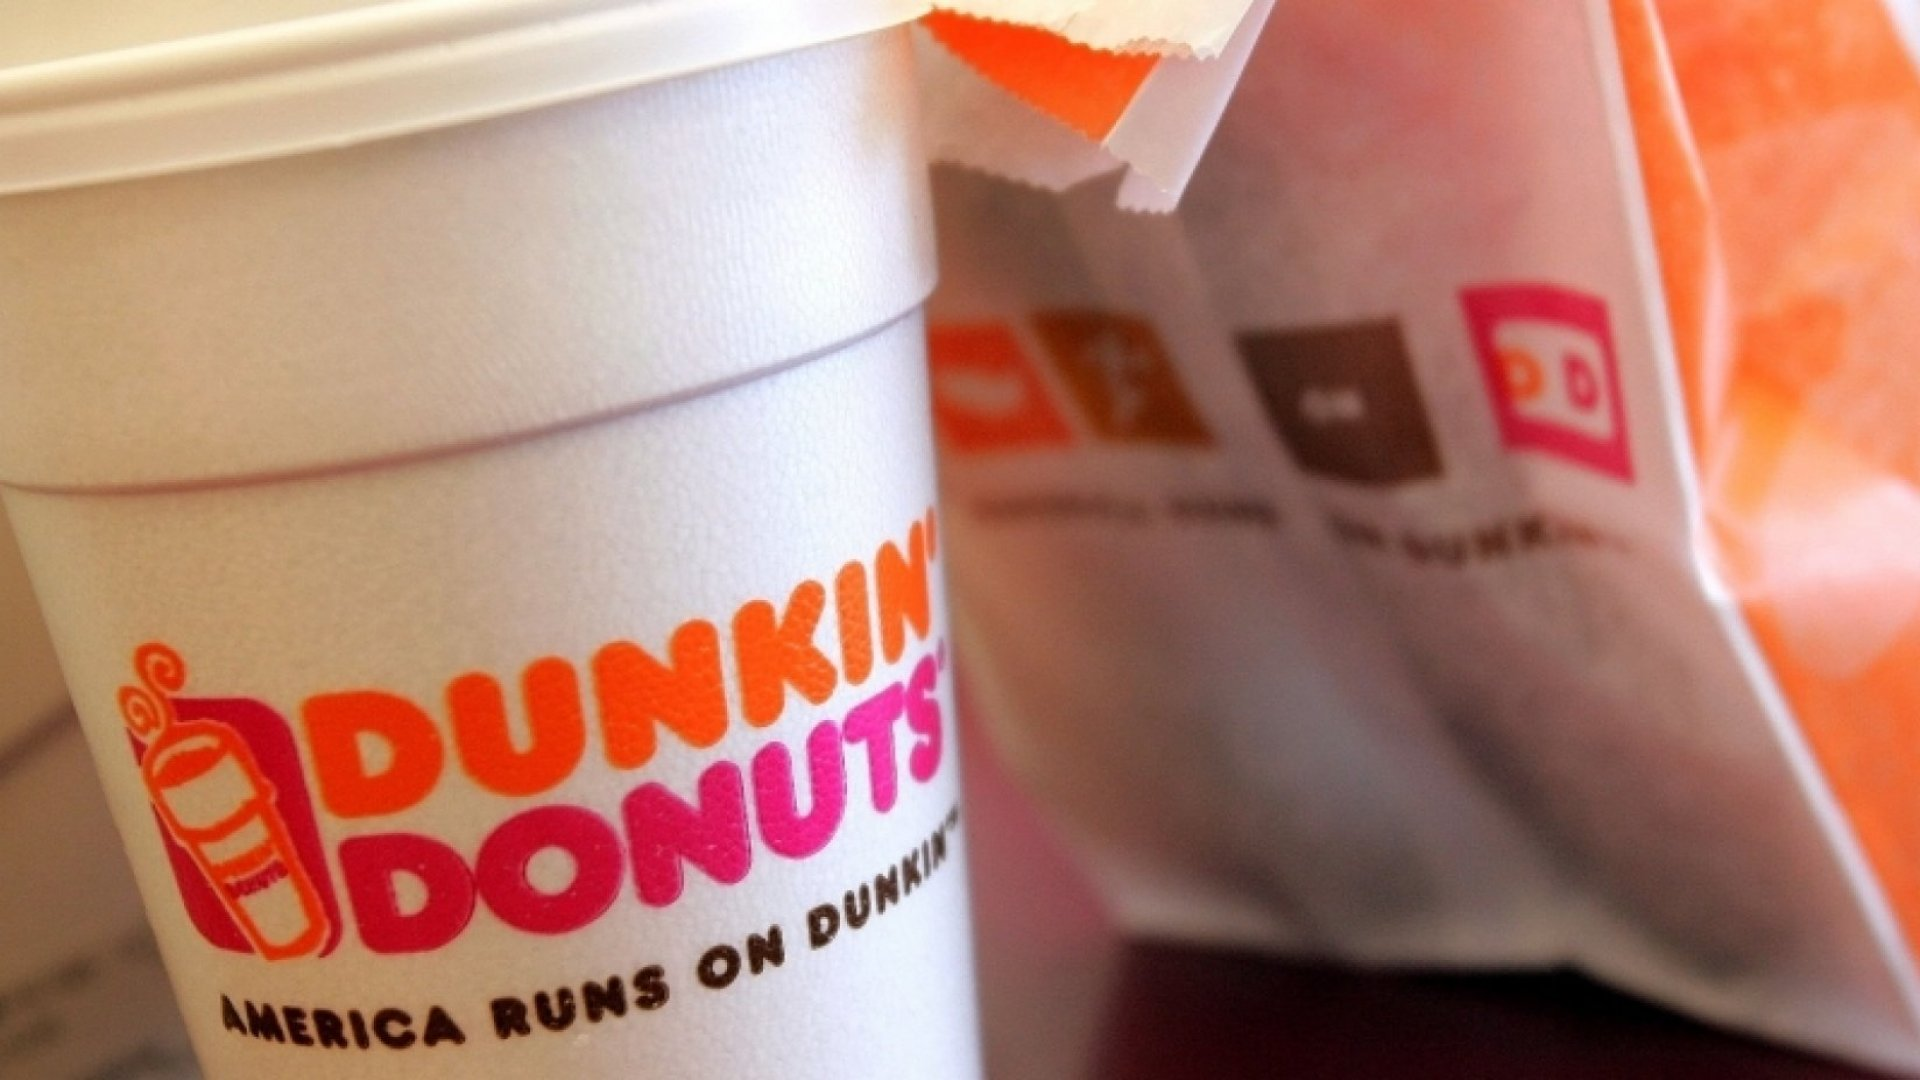 How an 8th-Grade Dropout Founded a $5 Billion Company (the Origin Story of Dunkin' Donuts)